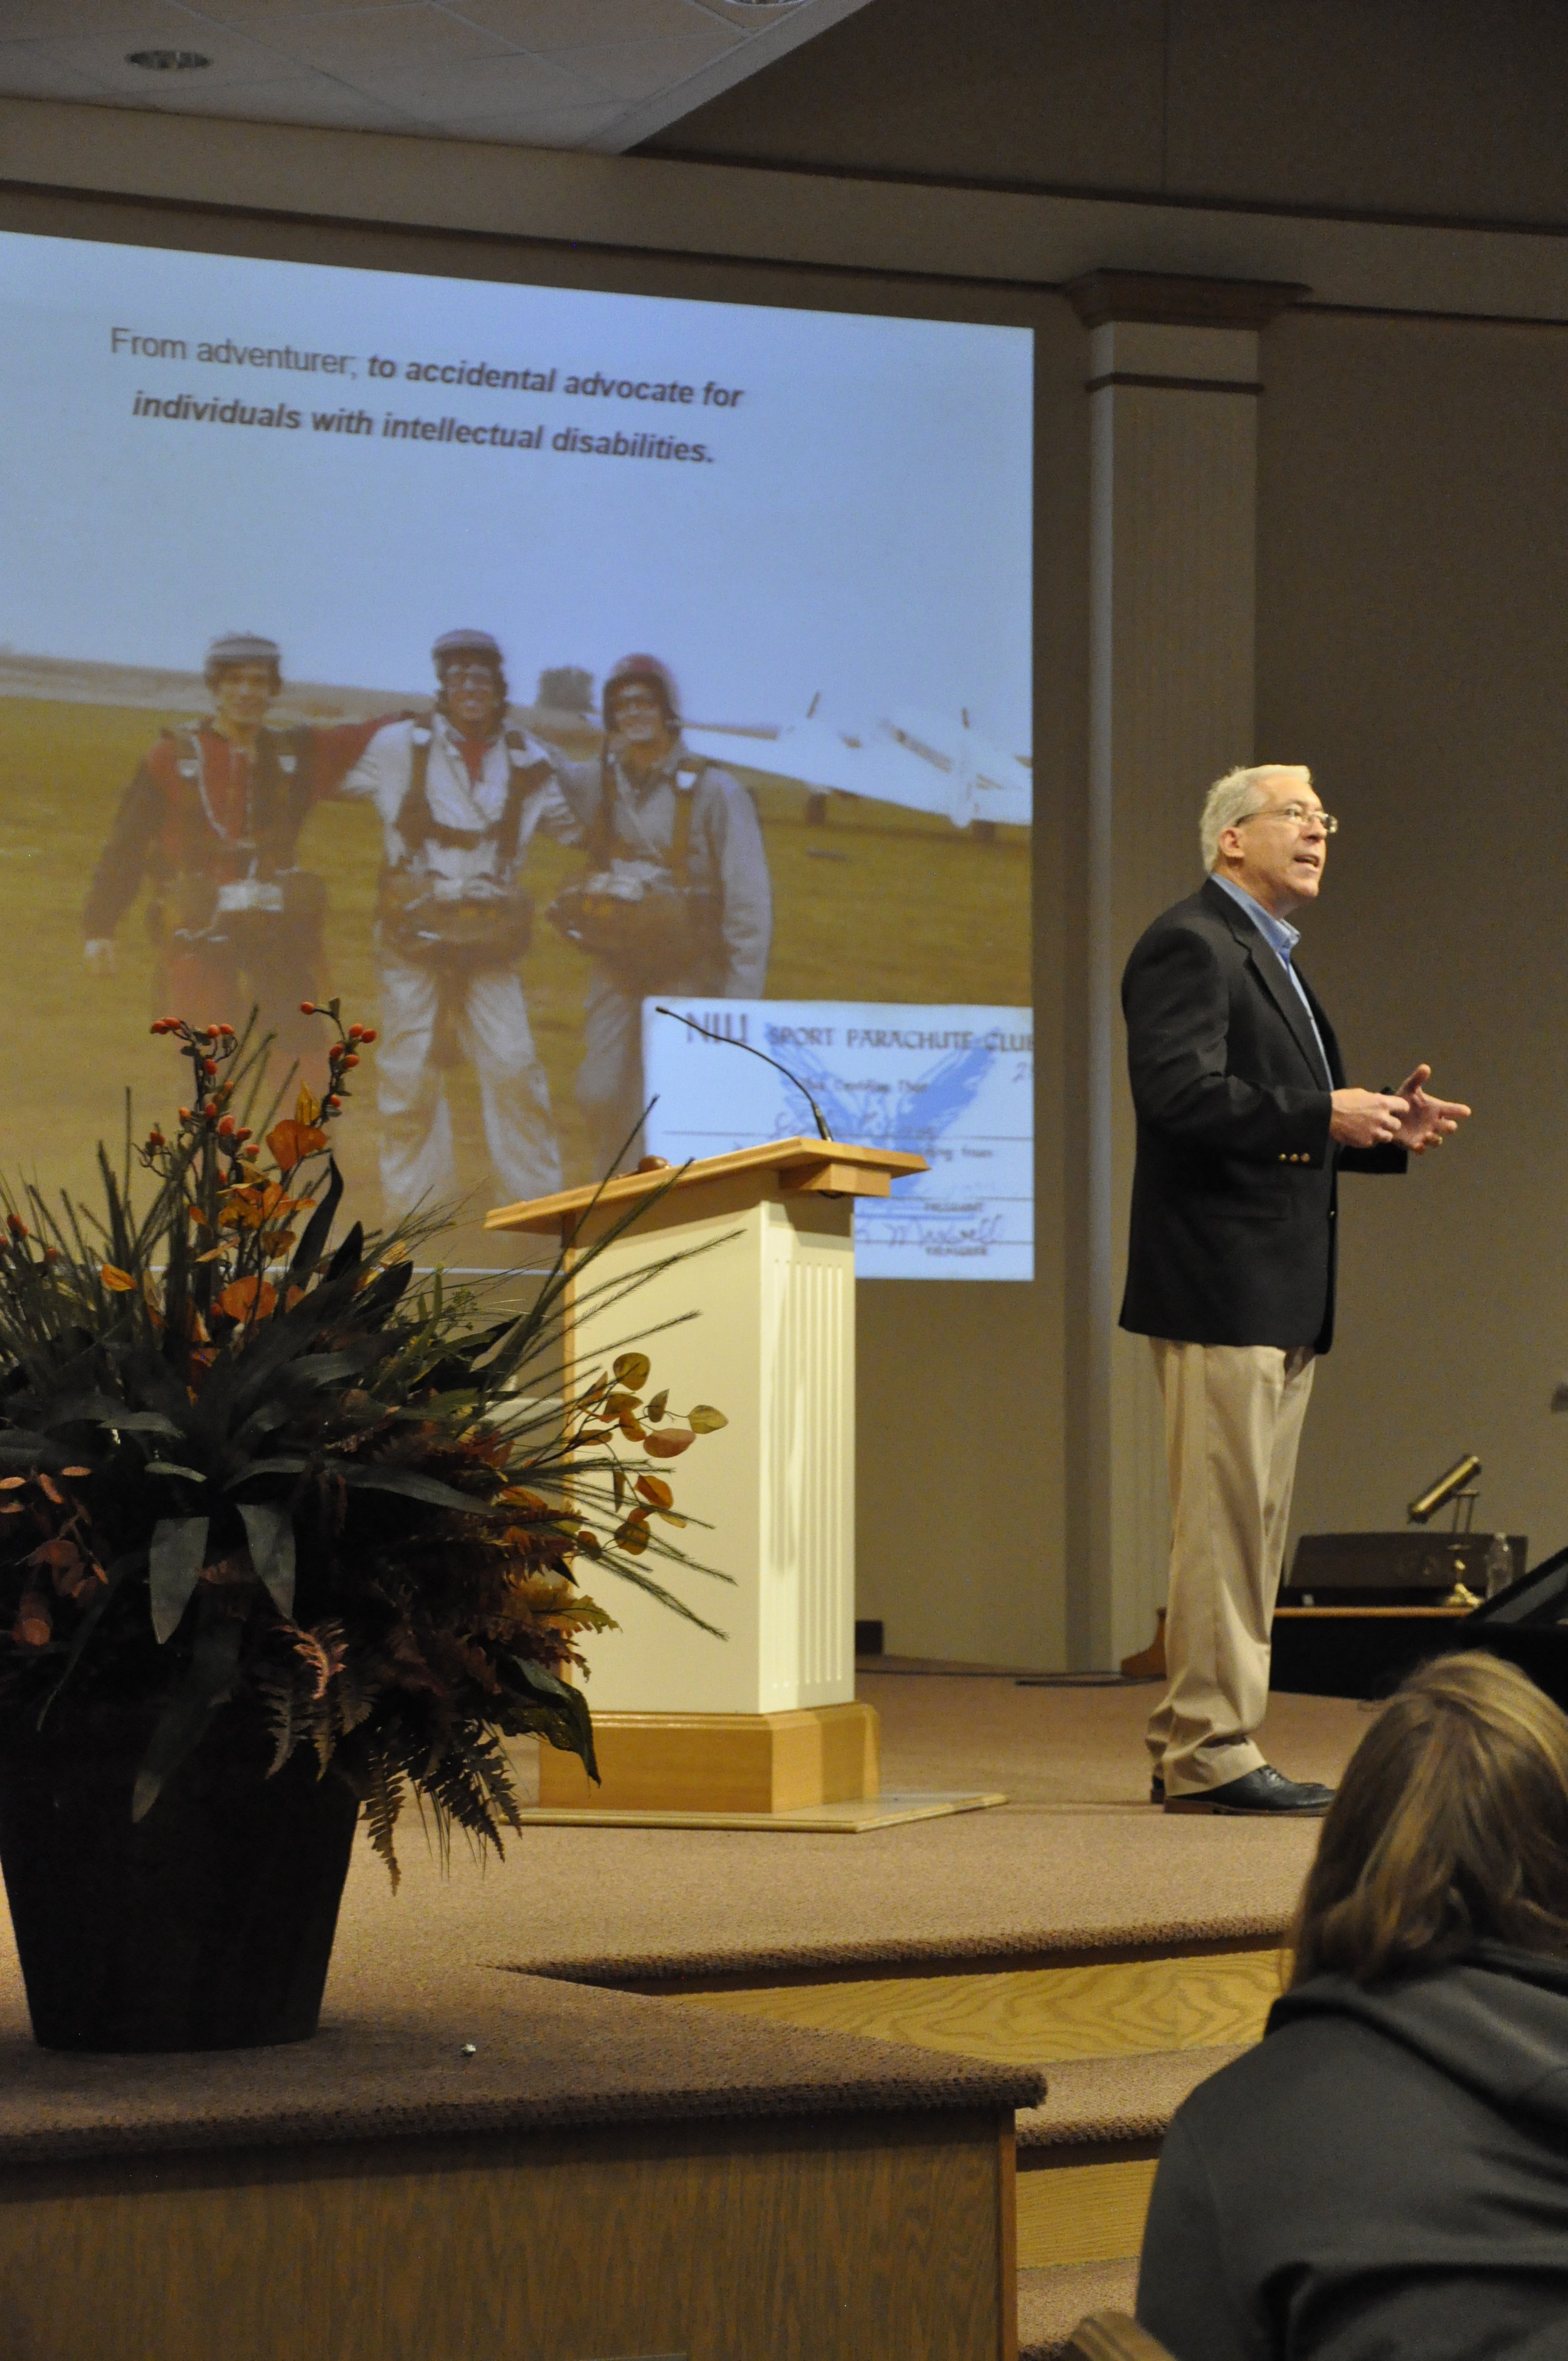 Pictured in the middle of the background photo and presenting on stage is Steve Cerve; from adventurer to accidental advocate.